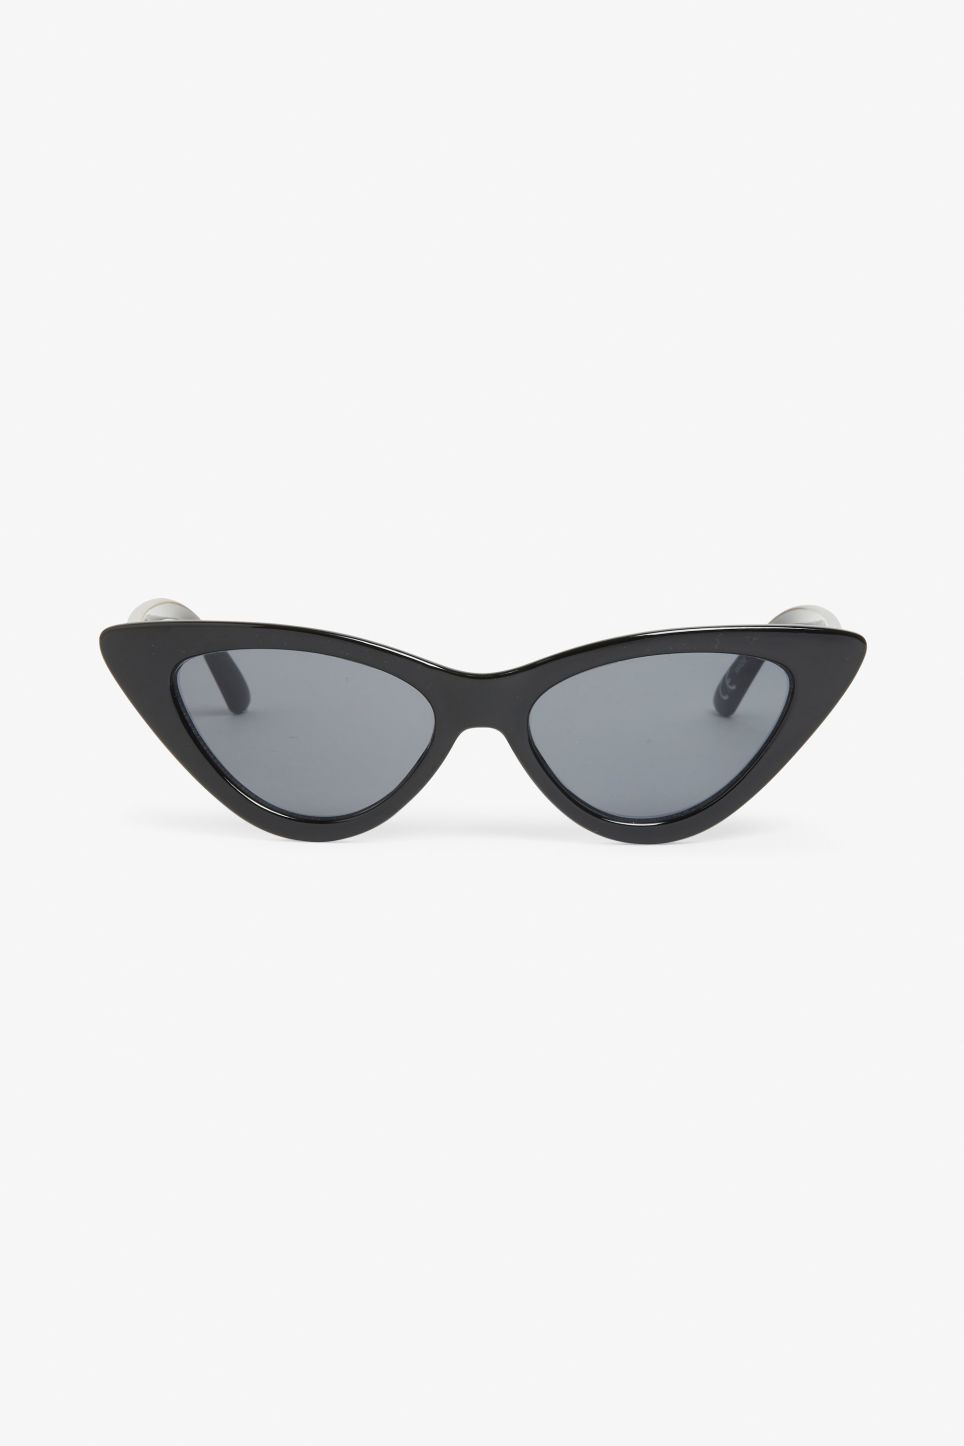 d8f9b13eed Cat eye sunglasses - Black magic - Sunglasses - Monki